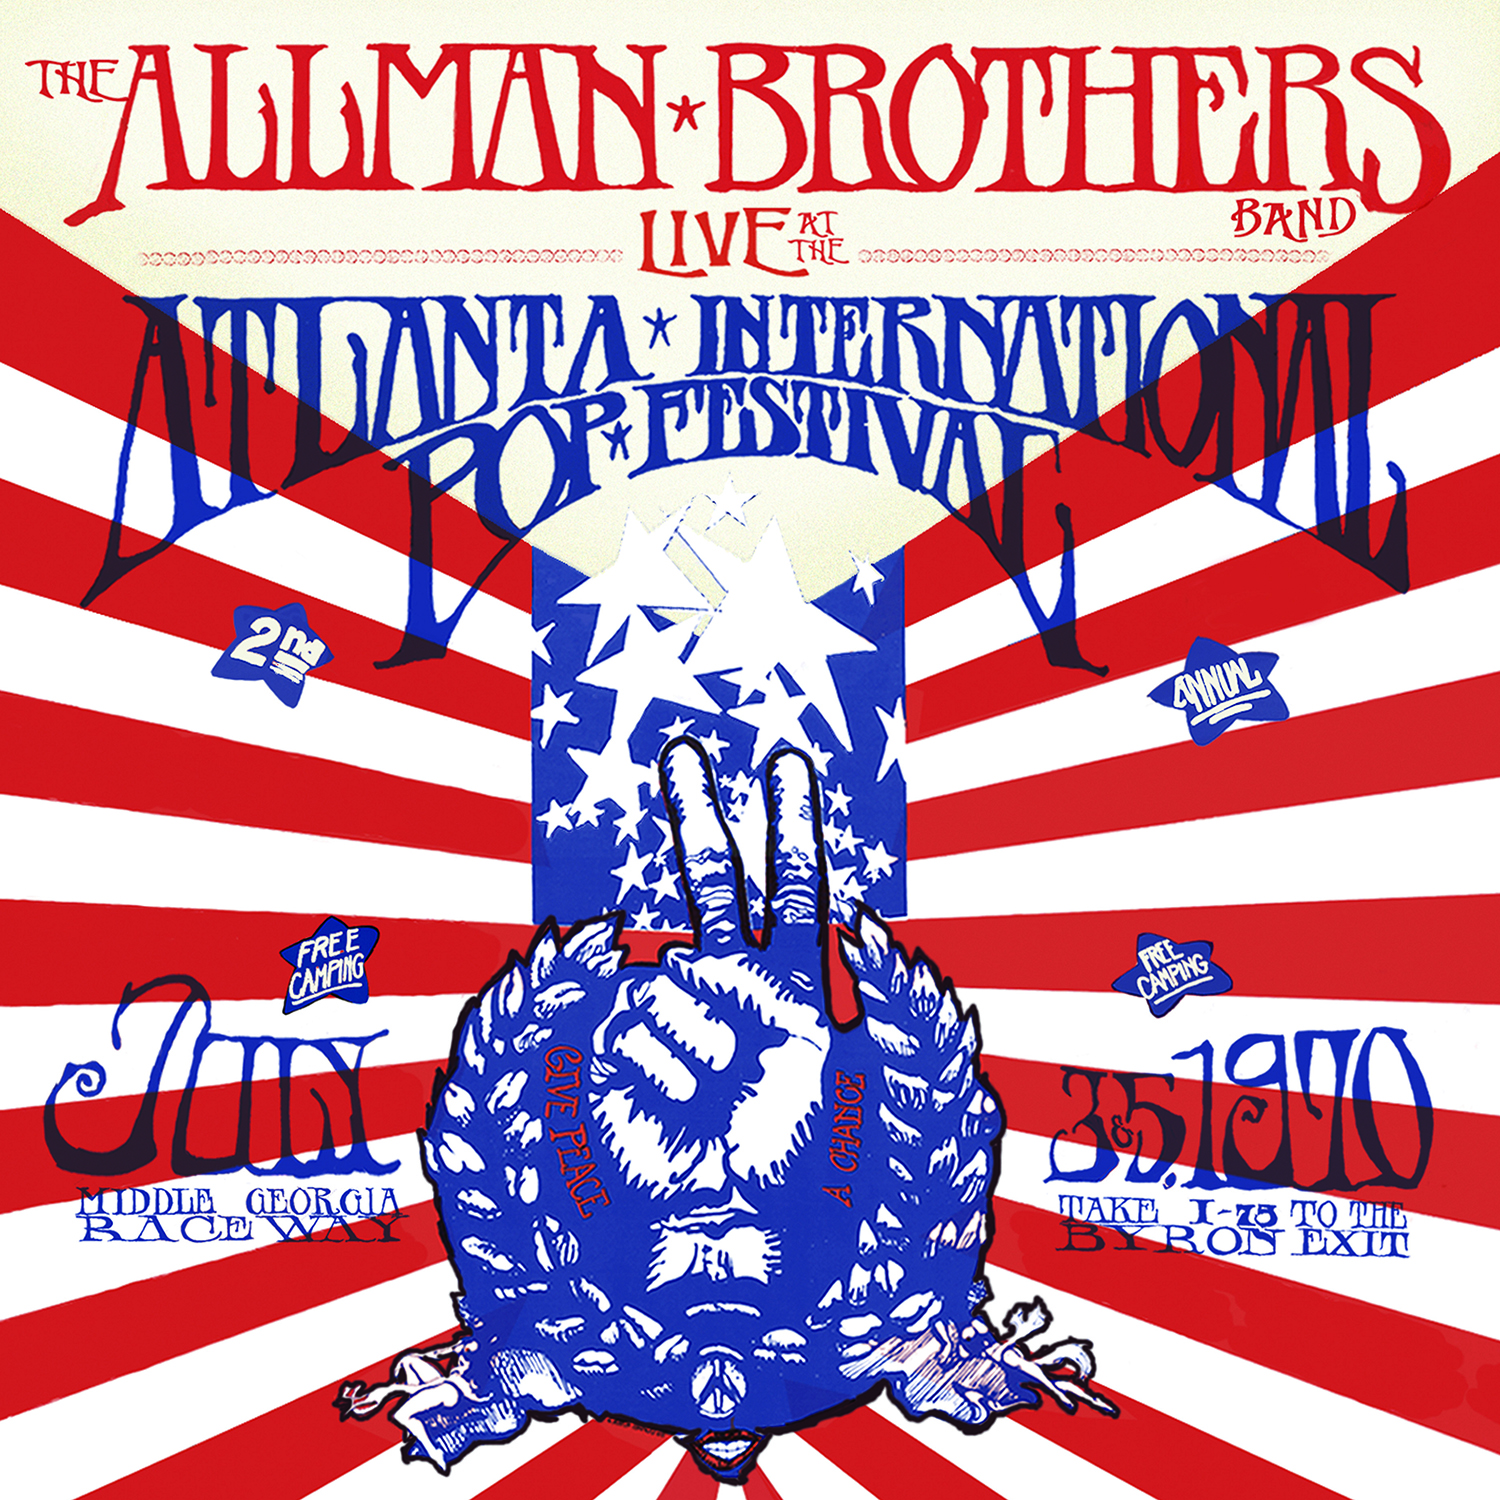 The Allman Brothers Band - Live At The Atlanta Pop Festival, July 3 & 5, 1970